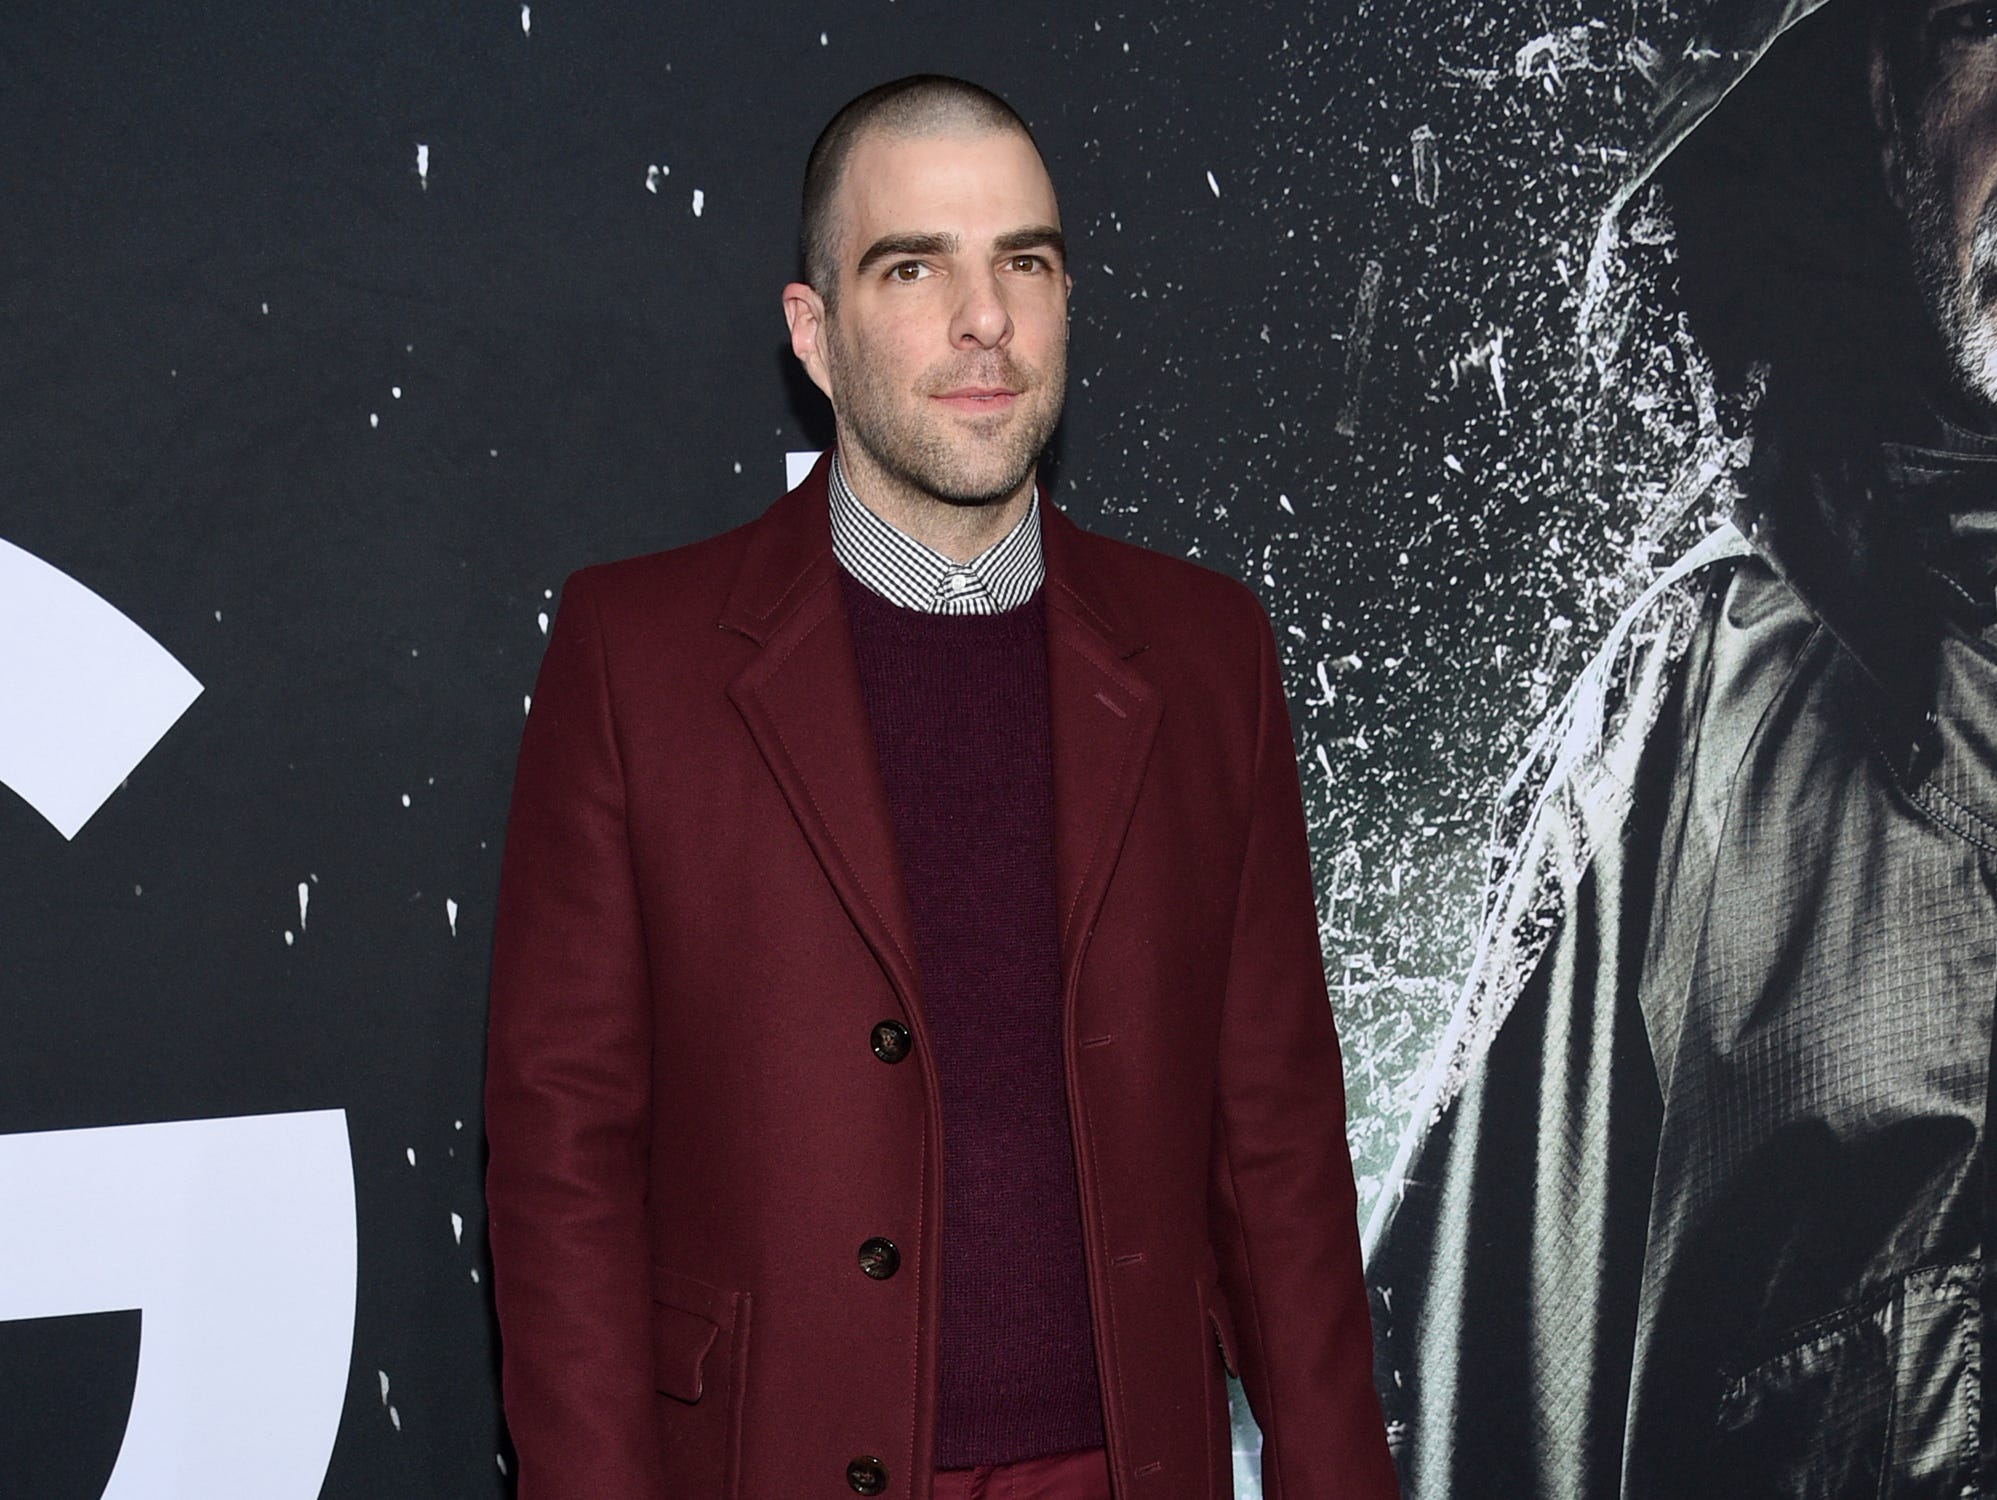 """Zachary Quinto attends the premiere of """"Glass"""" at the SVA Theatre on Tuesday, Jan. 15, 2019, in New York."""